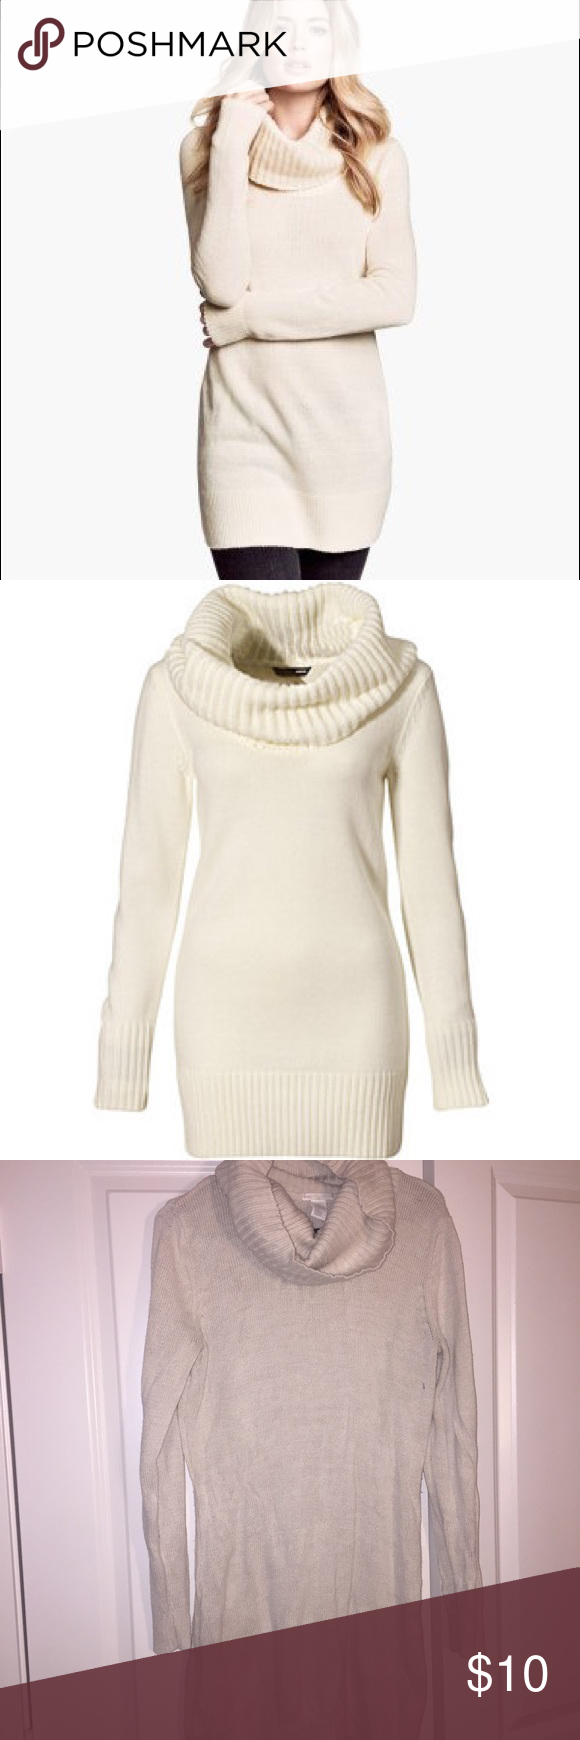 b220121a8fe Like new H M Cowl neck sweater dress! Like new cream colored cowl new  sweater dress! Only has been worn a few times! Great for the winter months!